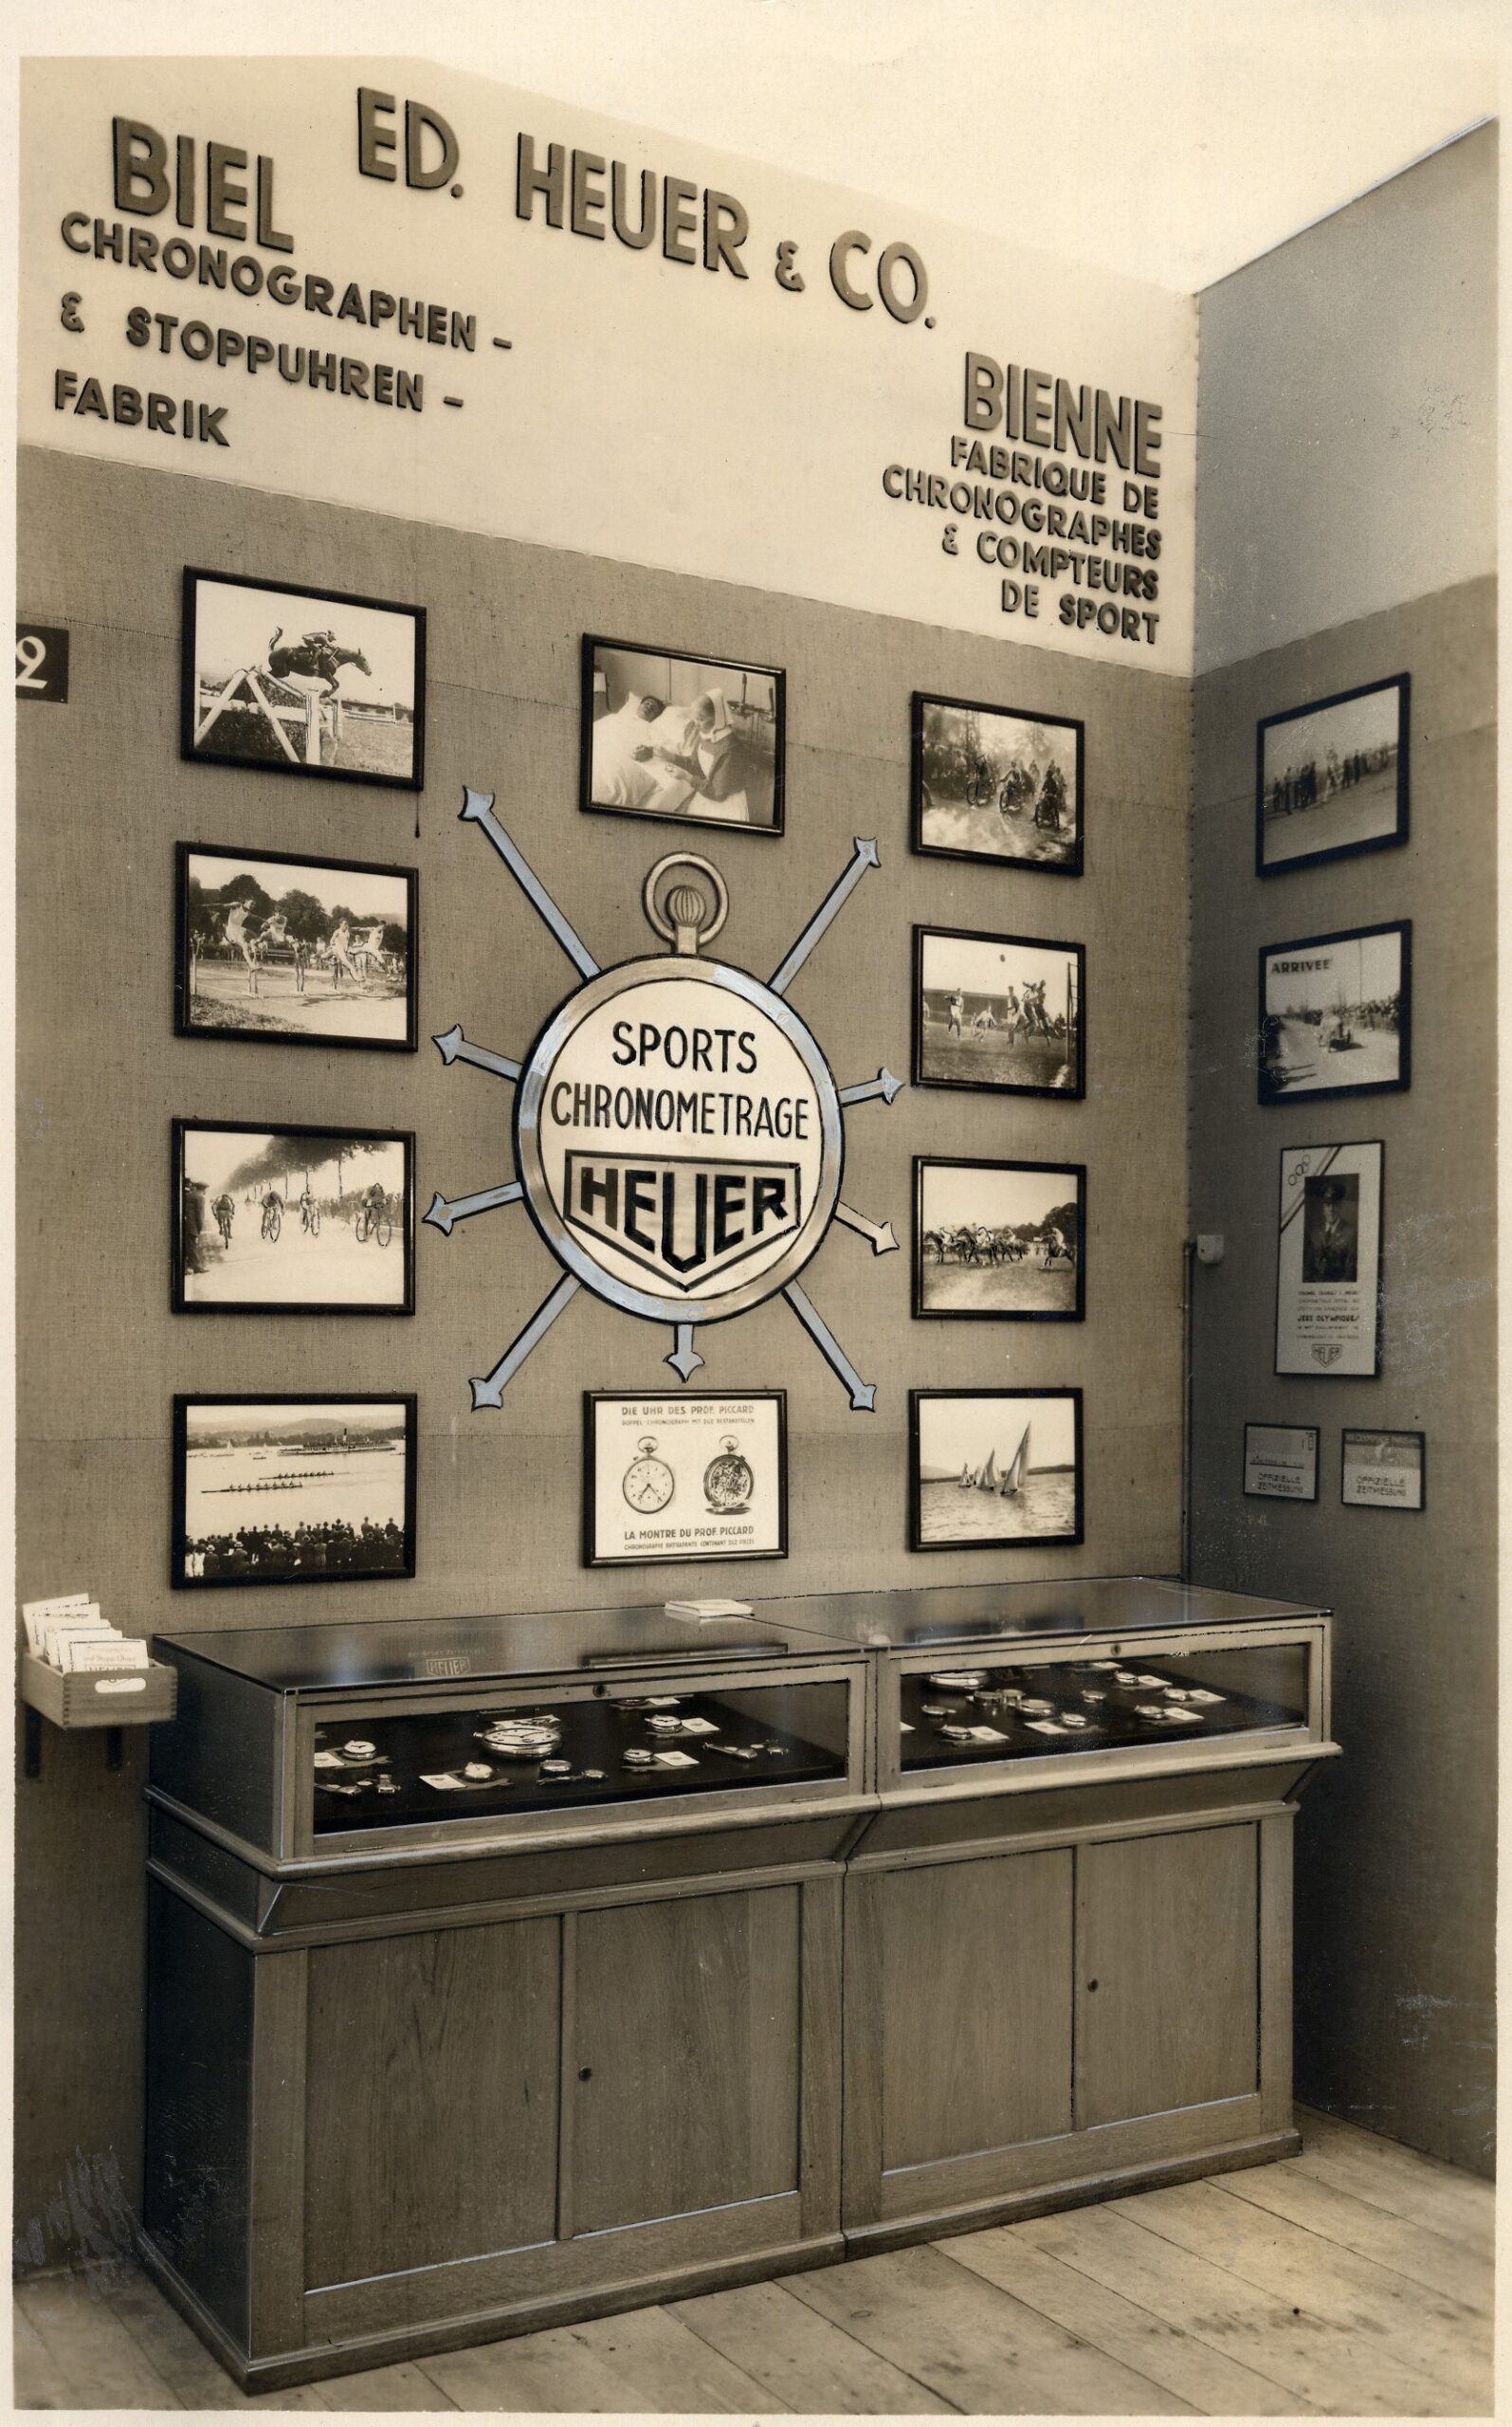 A Heuer showcase from 1931